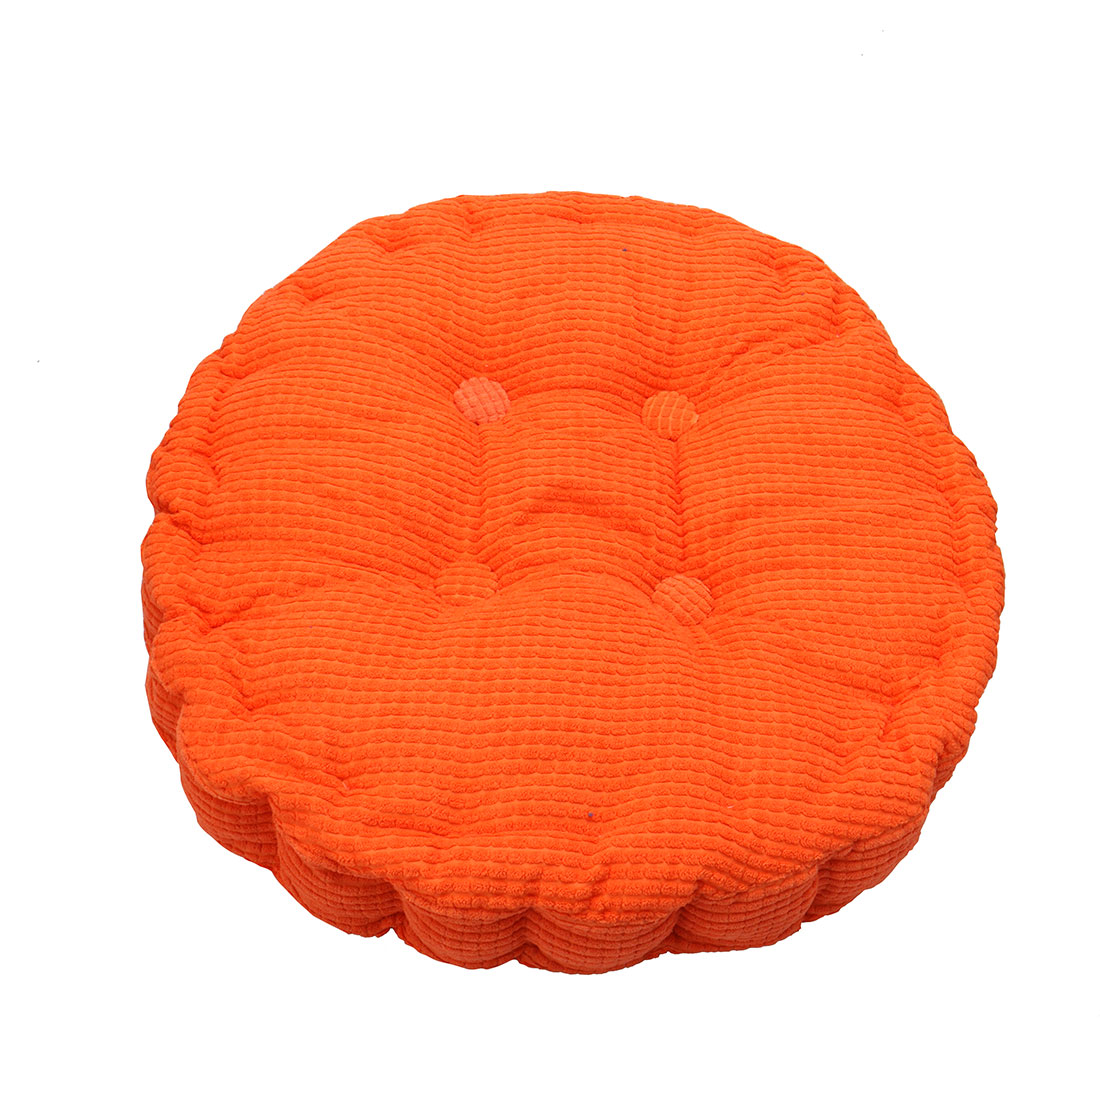 Home Corduroy Round Shaped Thickened Pillow Seat Chair Cushion Pad Mat Orange